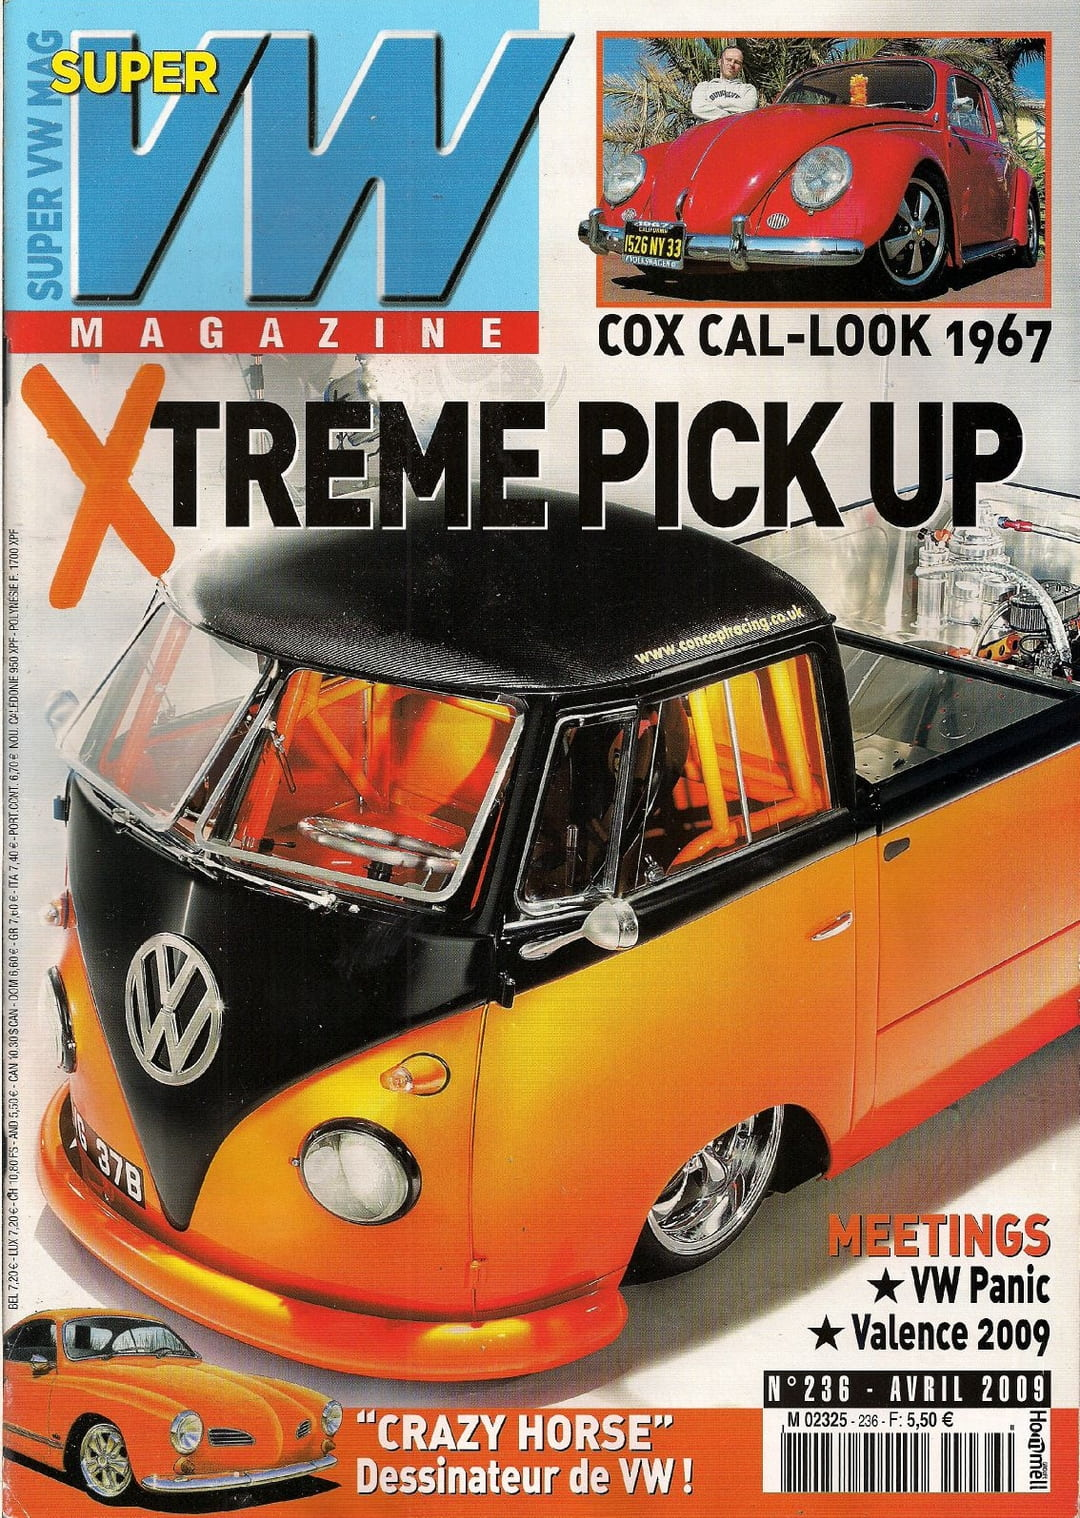 super vw magazine n 236 xtreme pick up cox cal look 1967 avril 2009 ebay. Black Bedroom Furniture Sets. Home Design Ideas